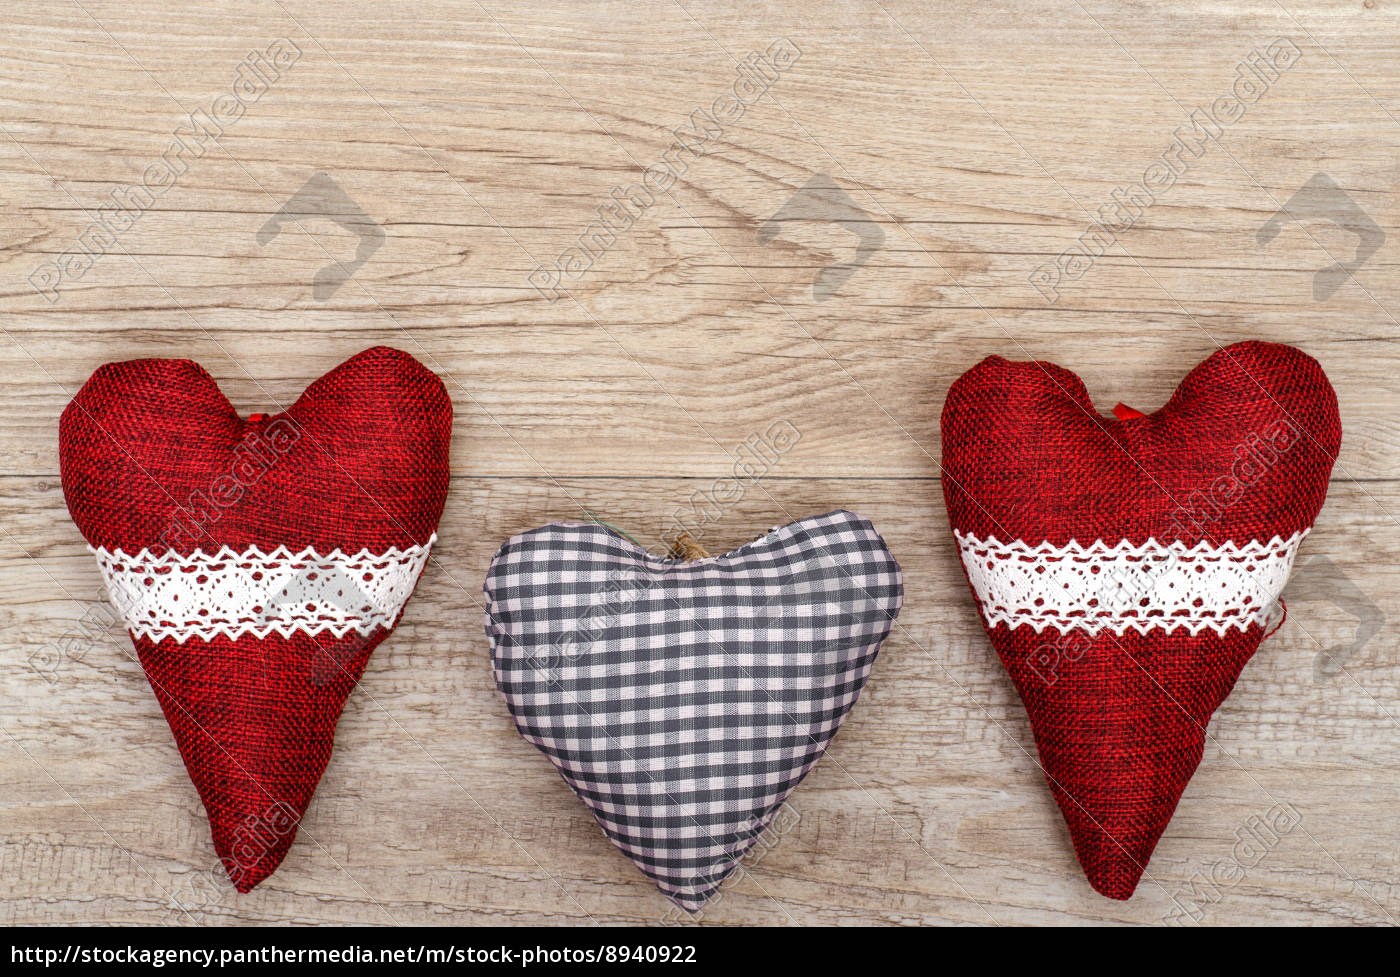 Fabric Hearts On Old Wood Stock Image 8940922 Panthermedia Stock Agency